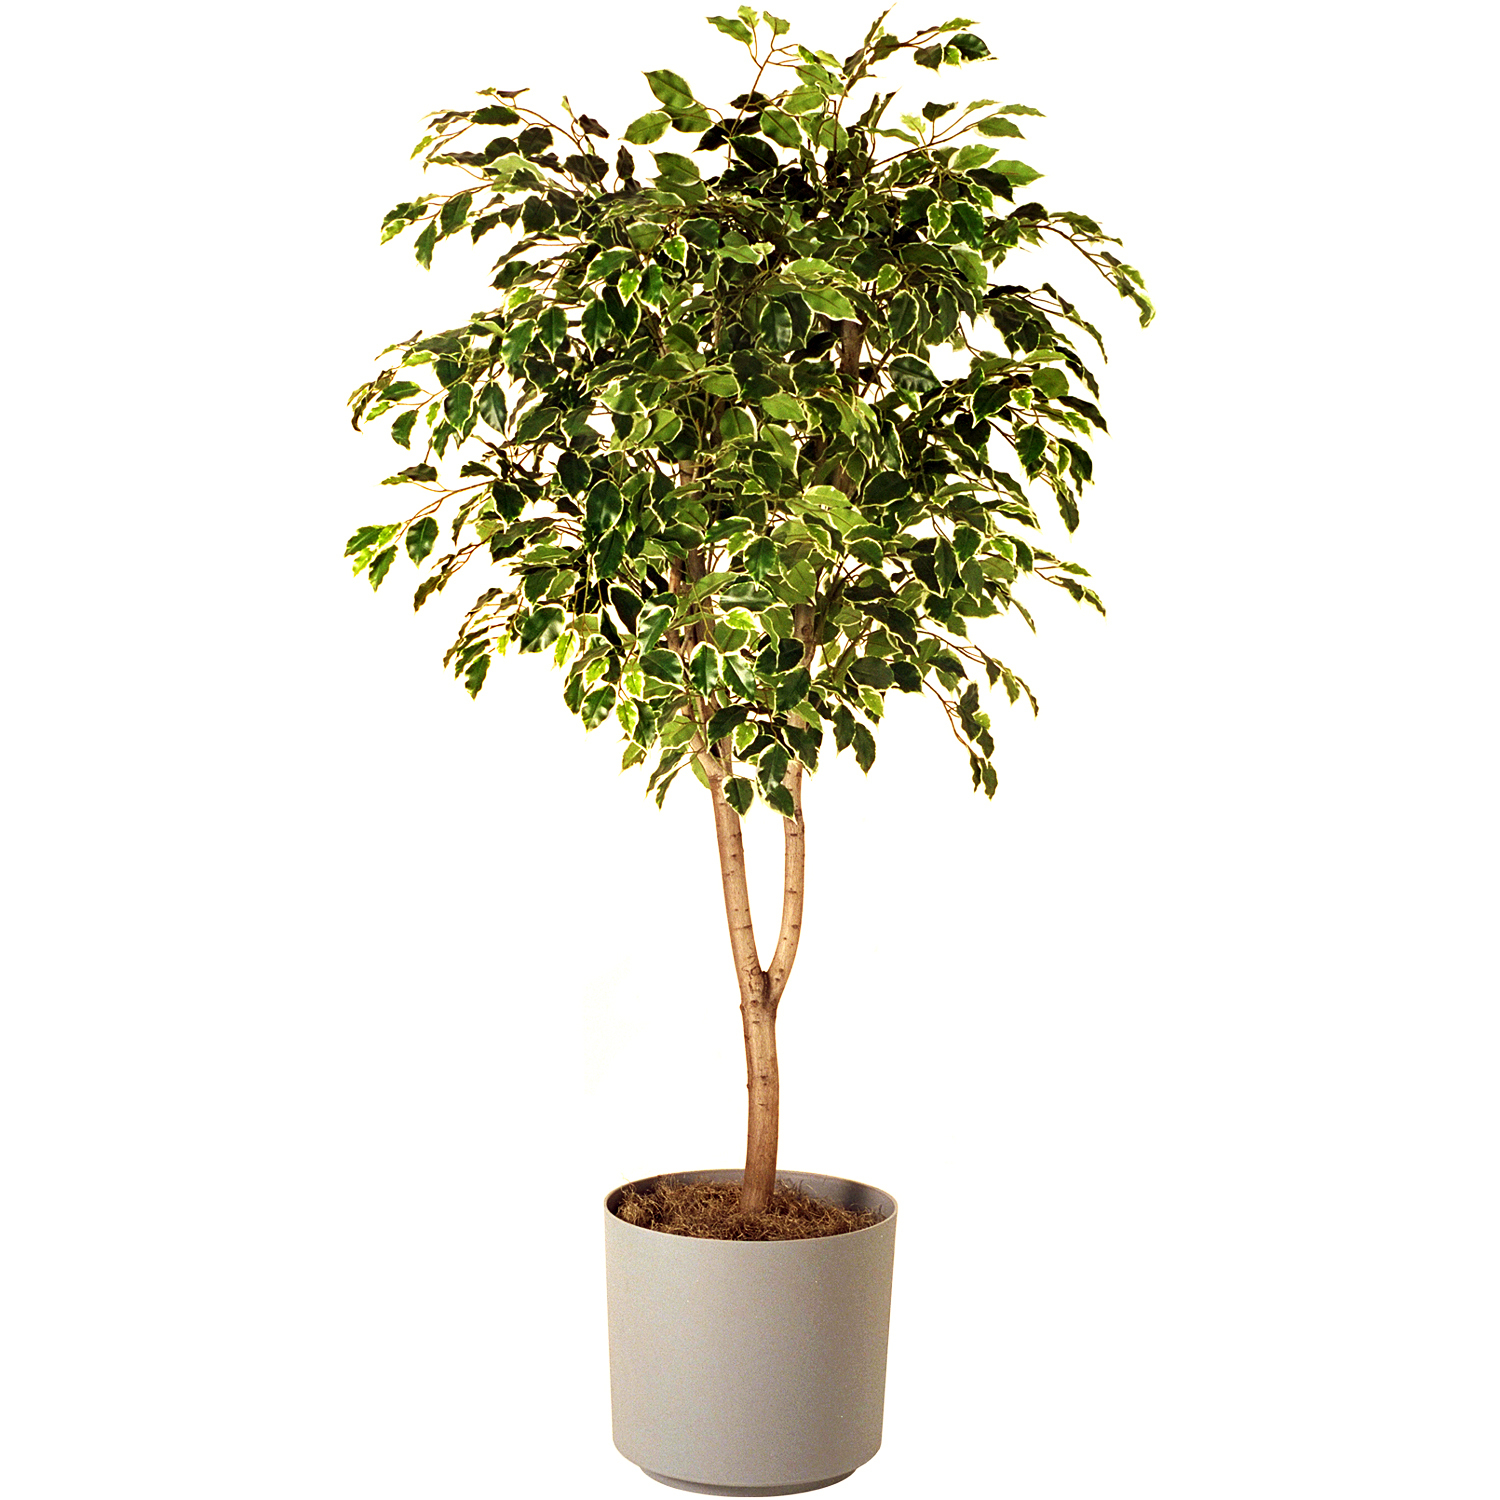 Want To Keep Your House Cool Without An Ac Bring These Plants In Your House Top 10 Plants